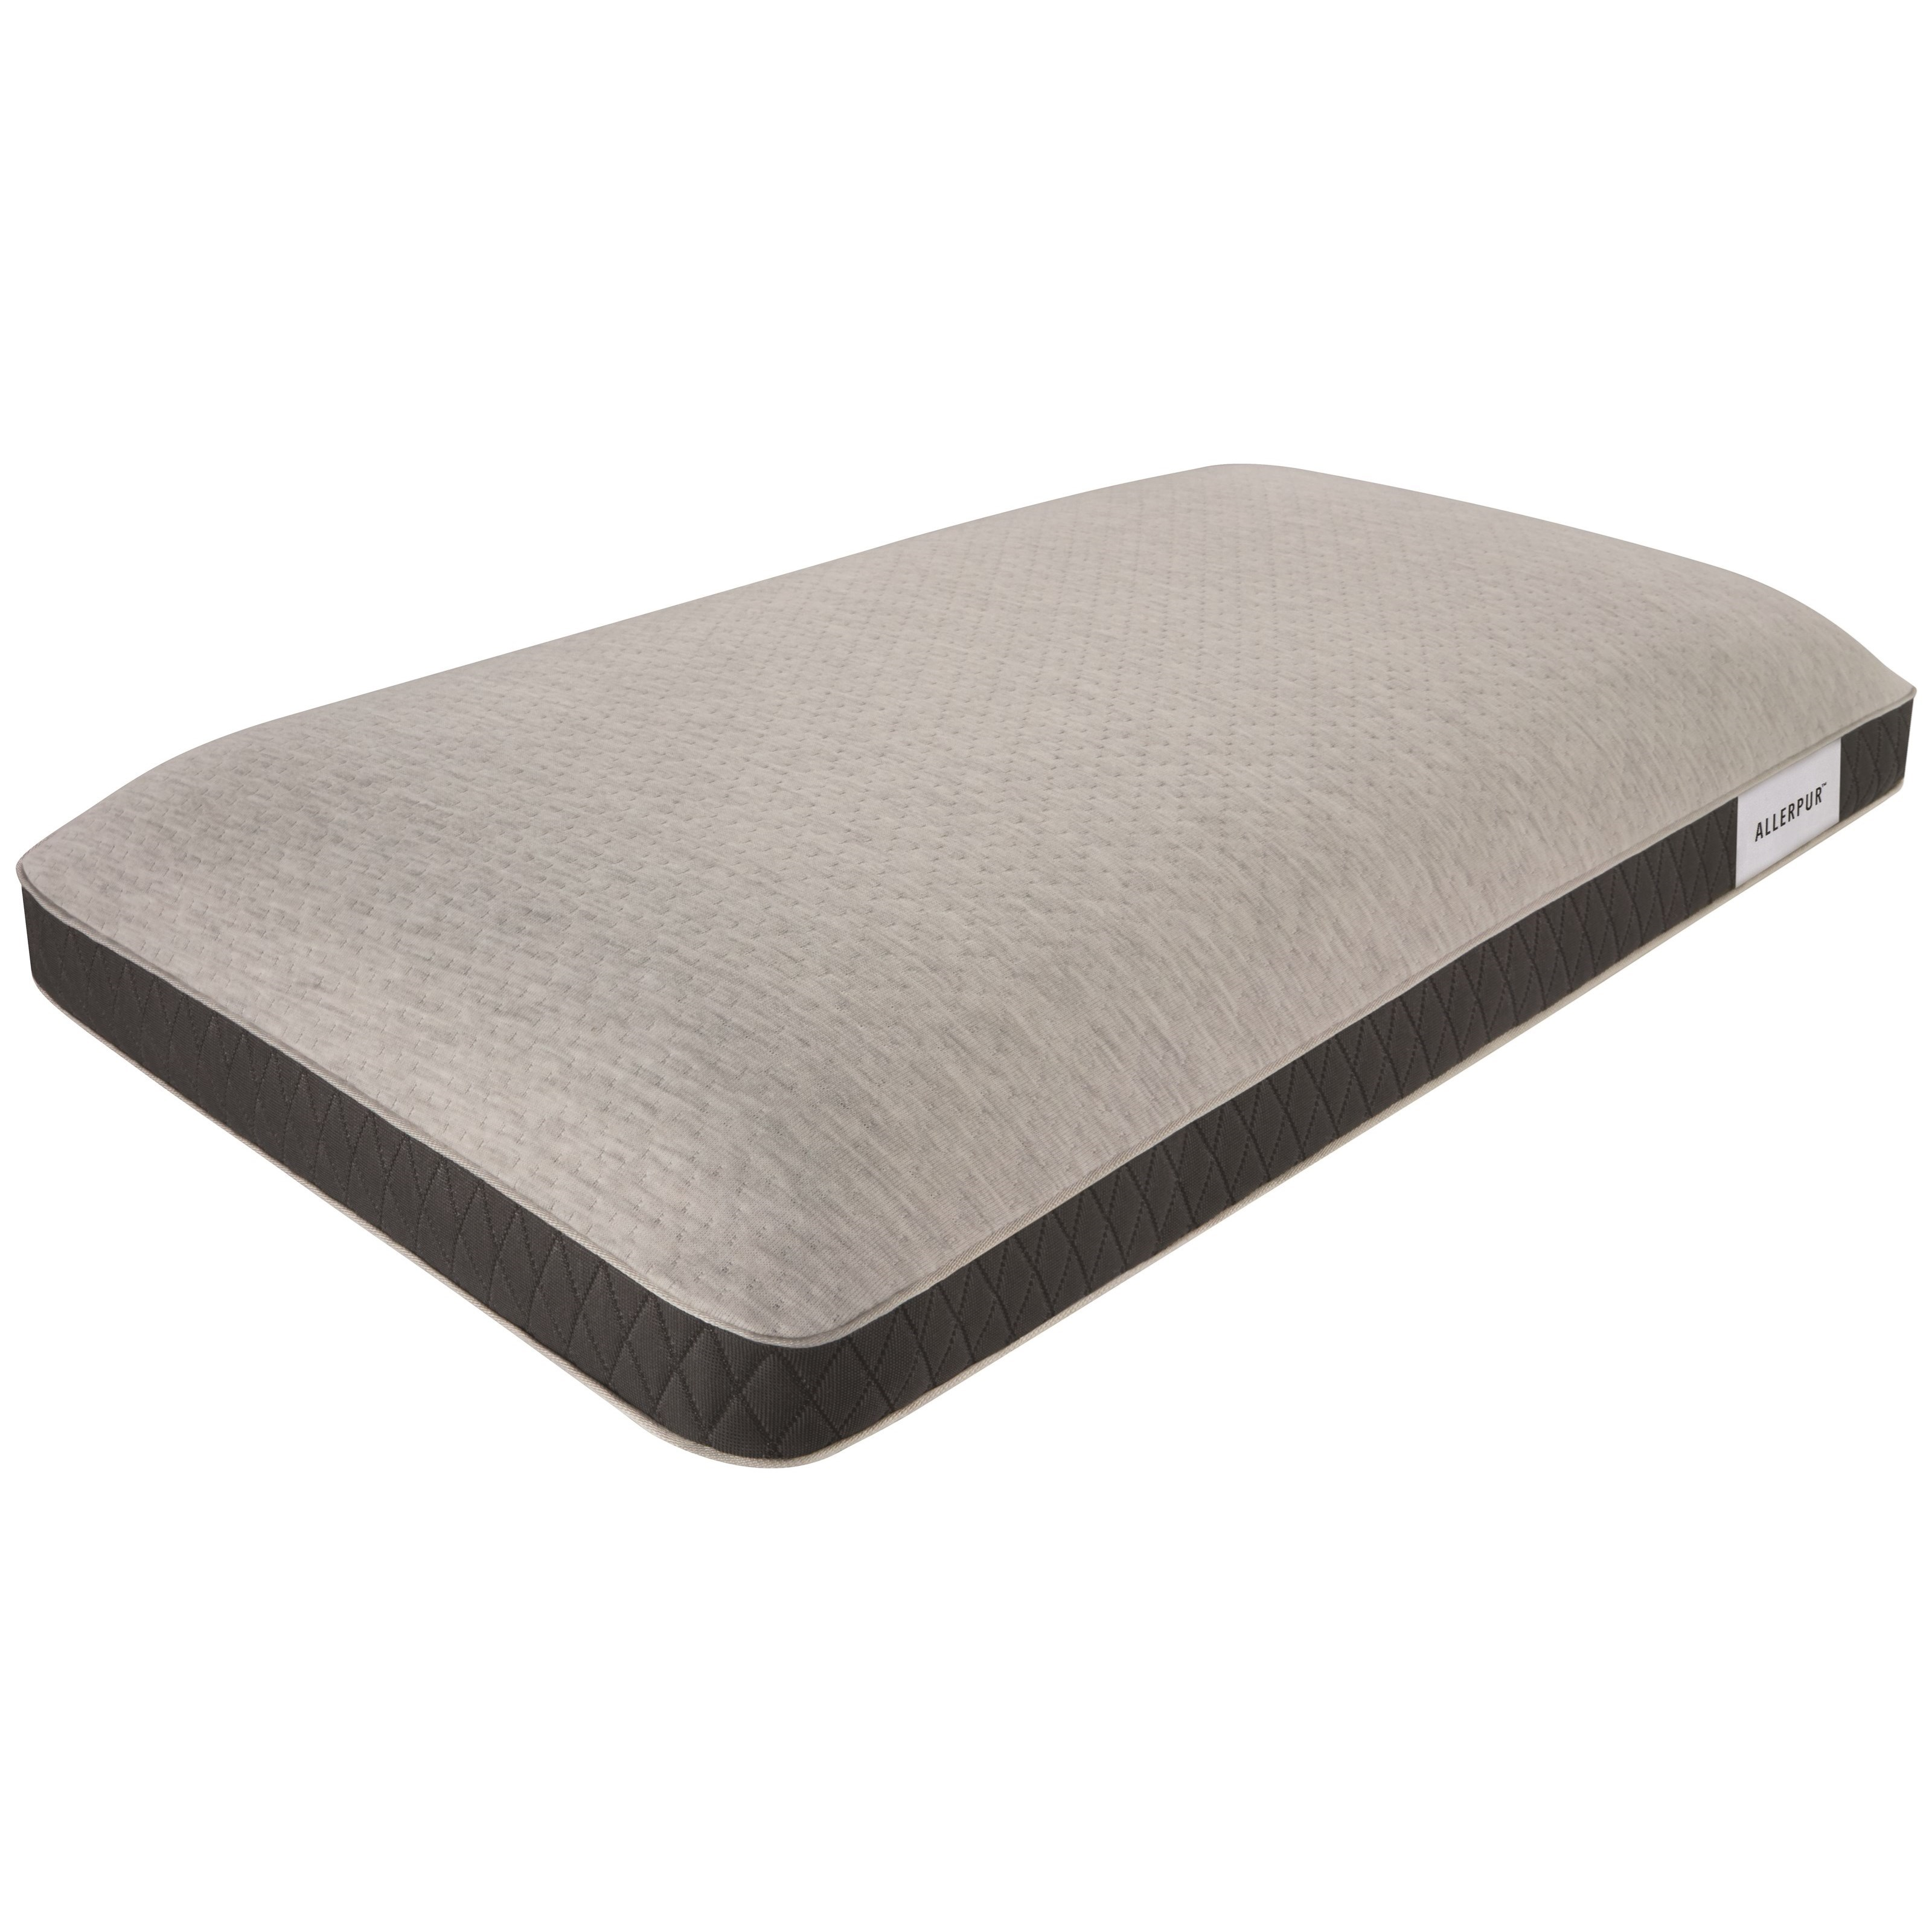 "Absolute Luxury Pillow 6"" Absolute Luxury Memory Foam Pillow by Beautyrest at Becker Furniture"